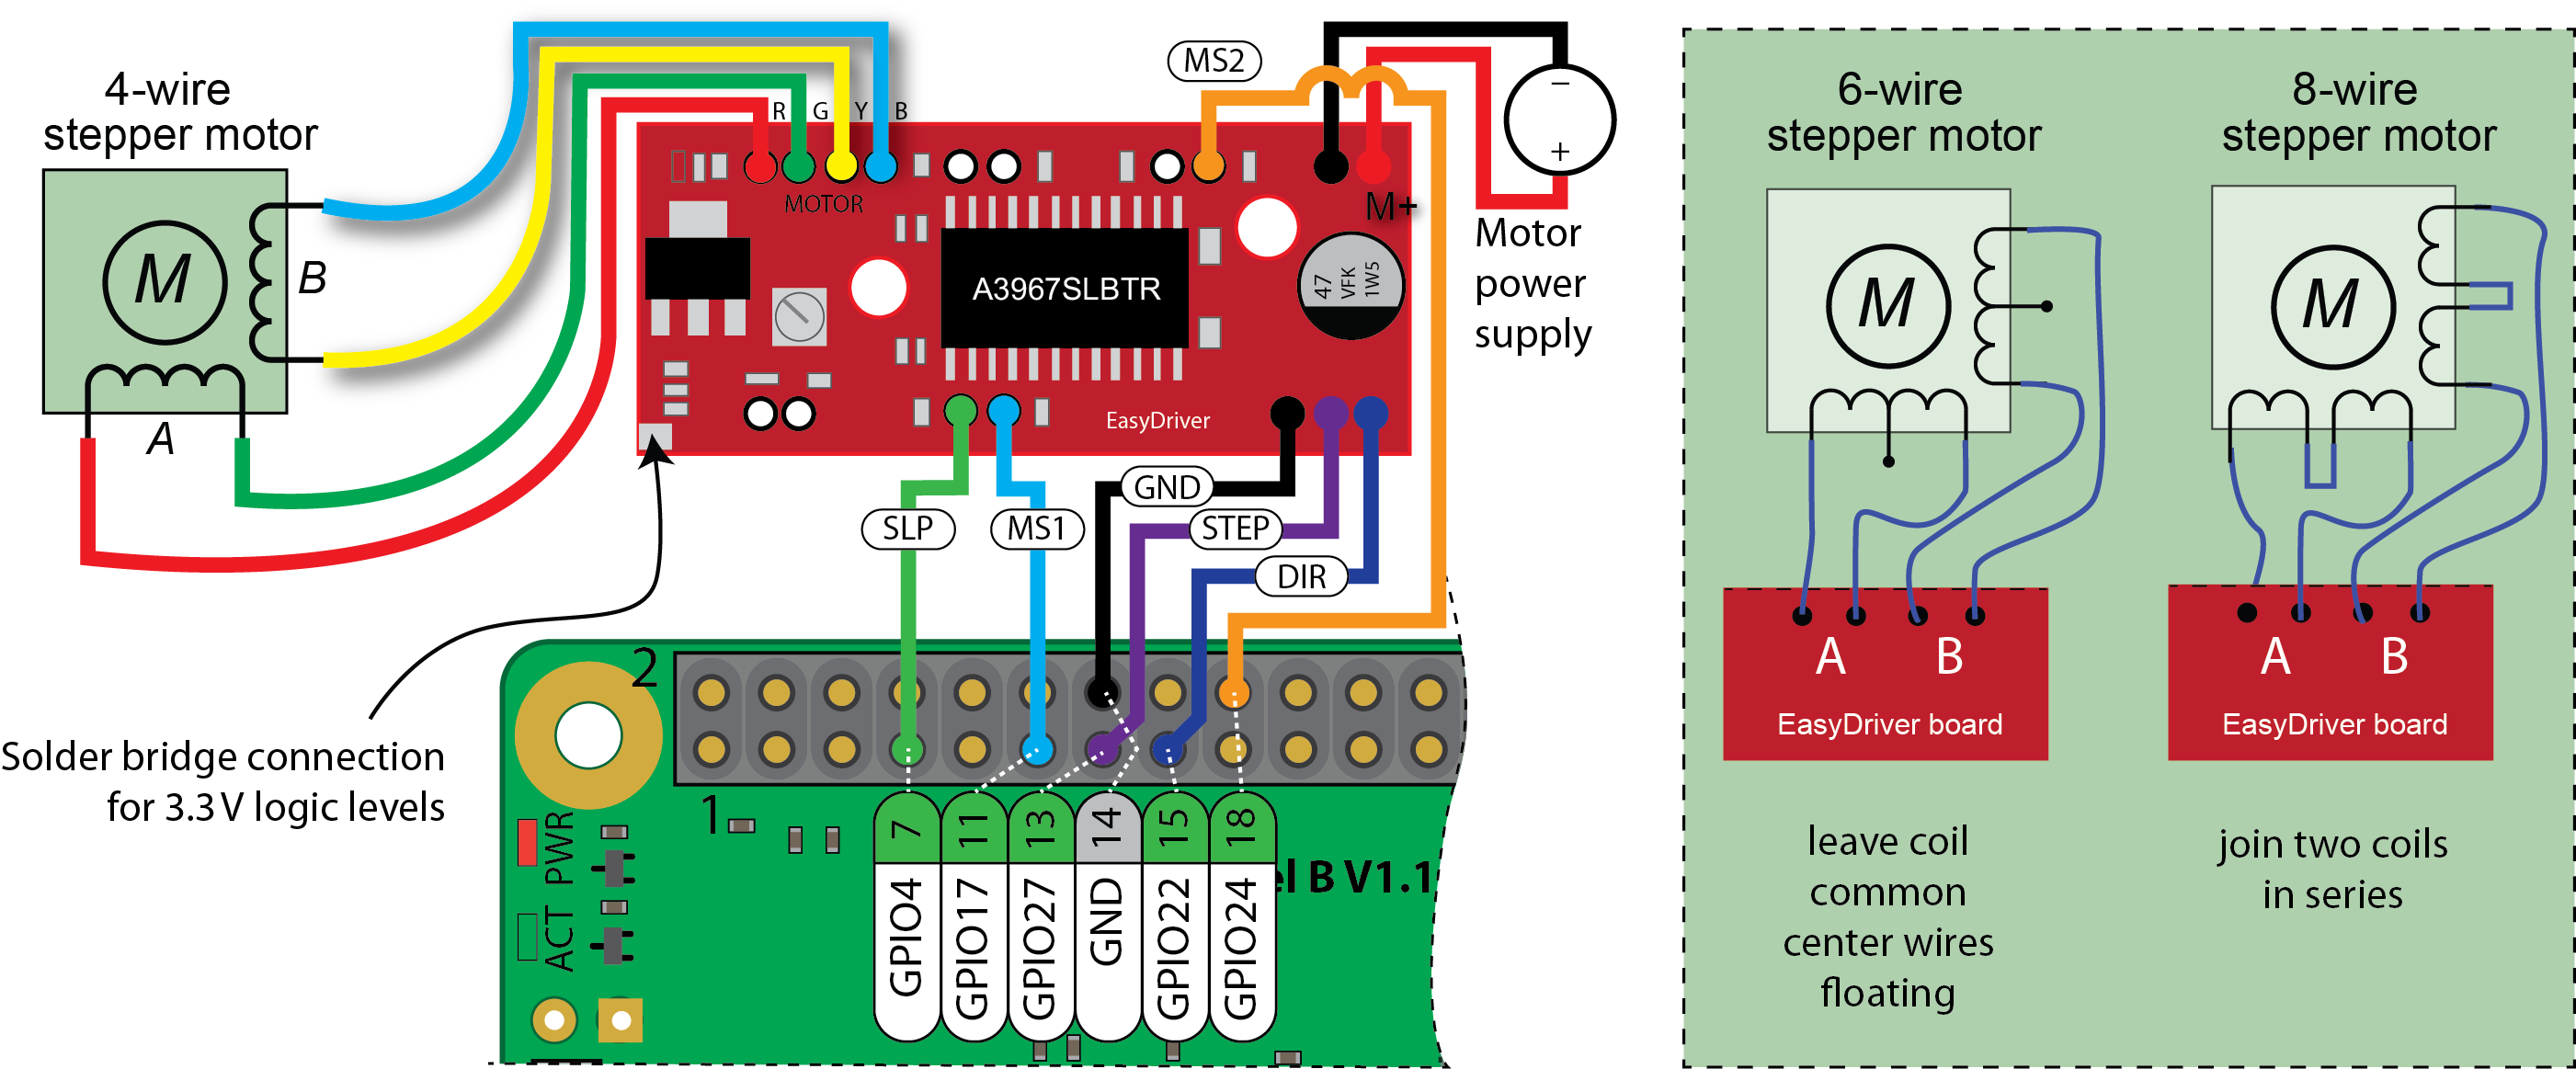 Chapter 10 Interacting With The Physical Environment Exploring 4 Wire Stepper Motor Diagram Some Other High Resolution Figures From This